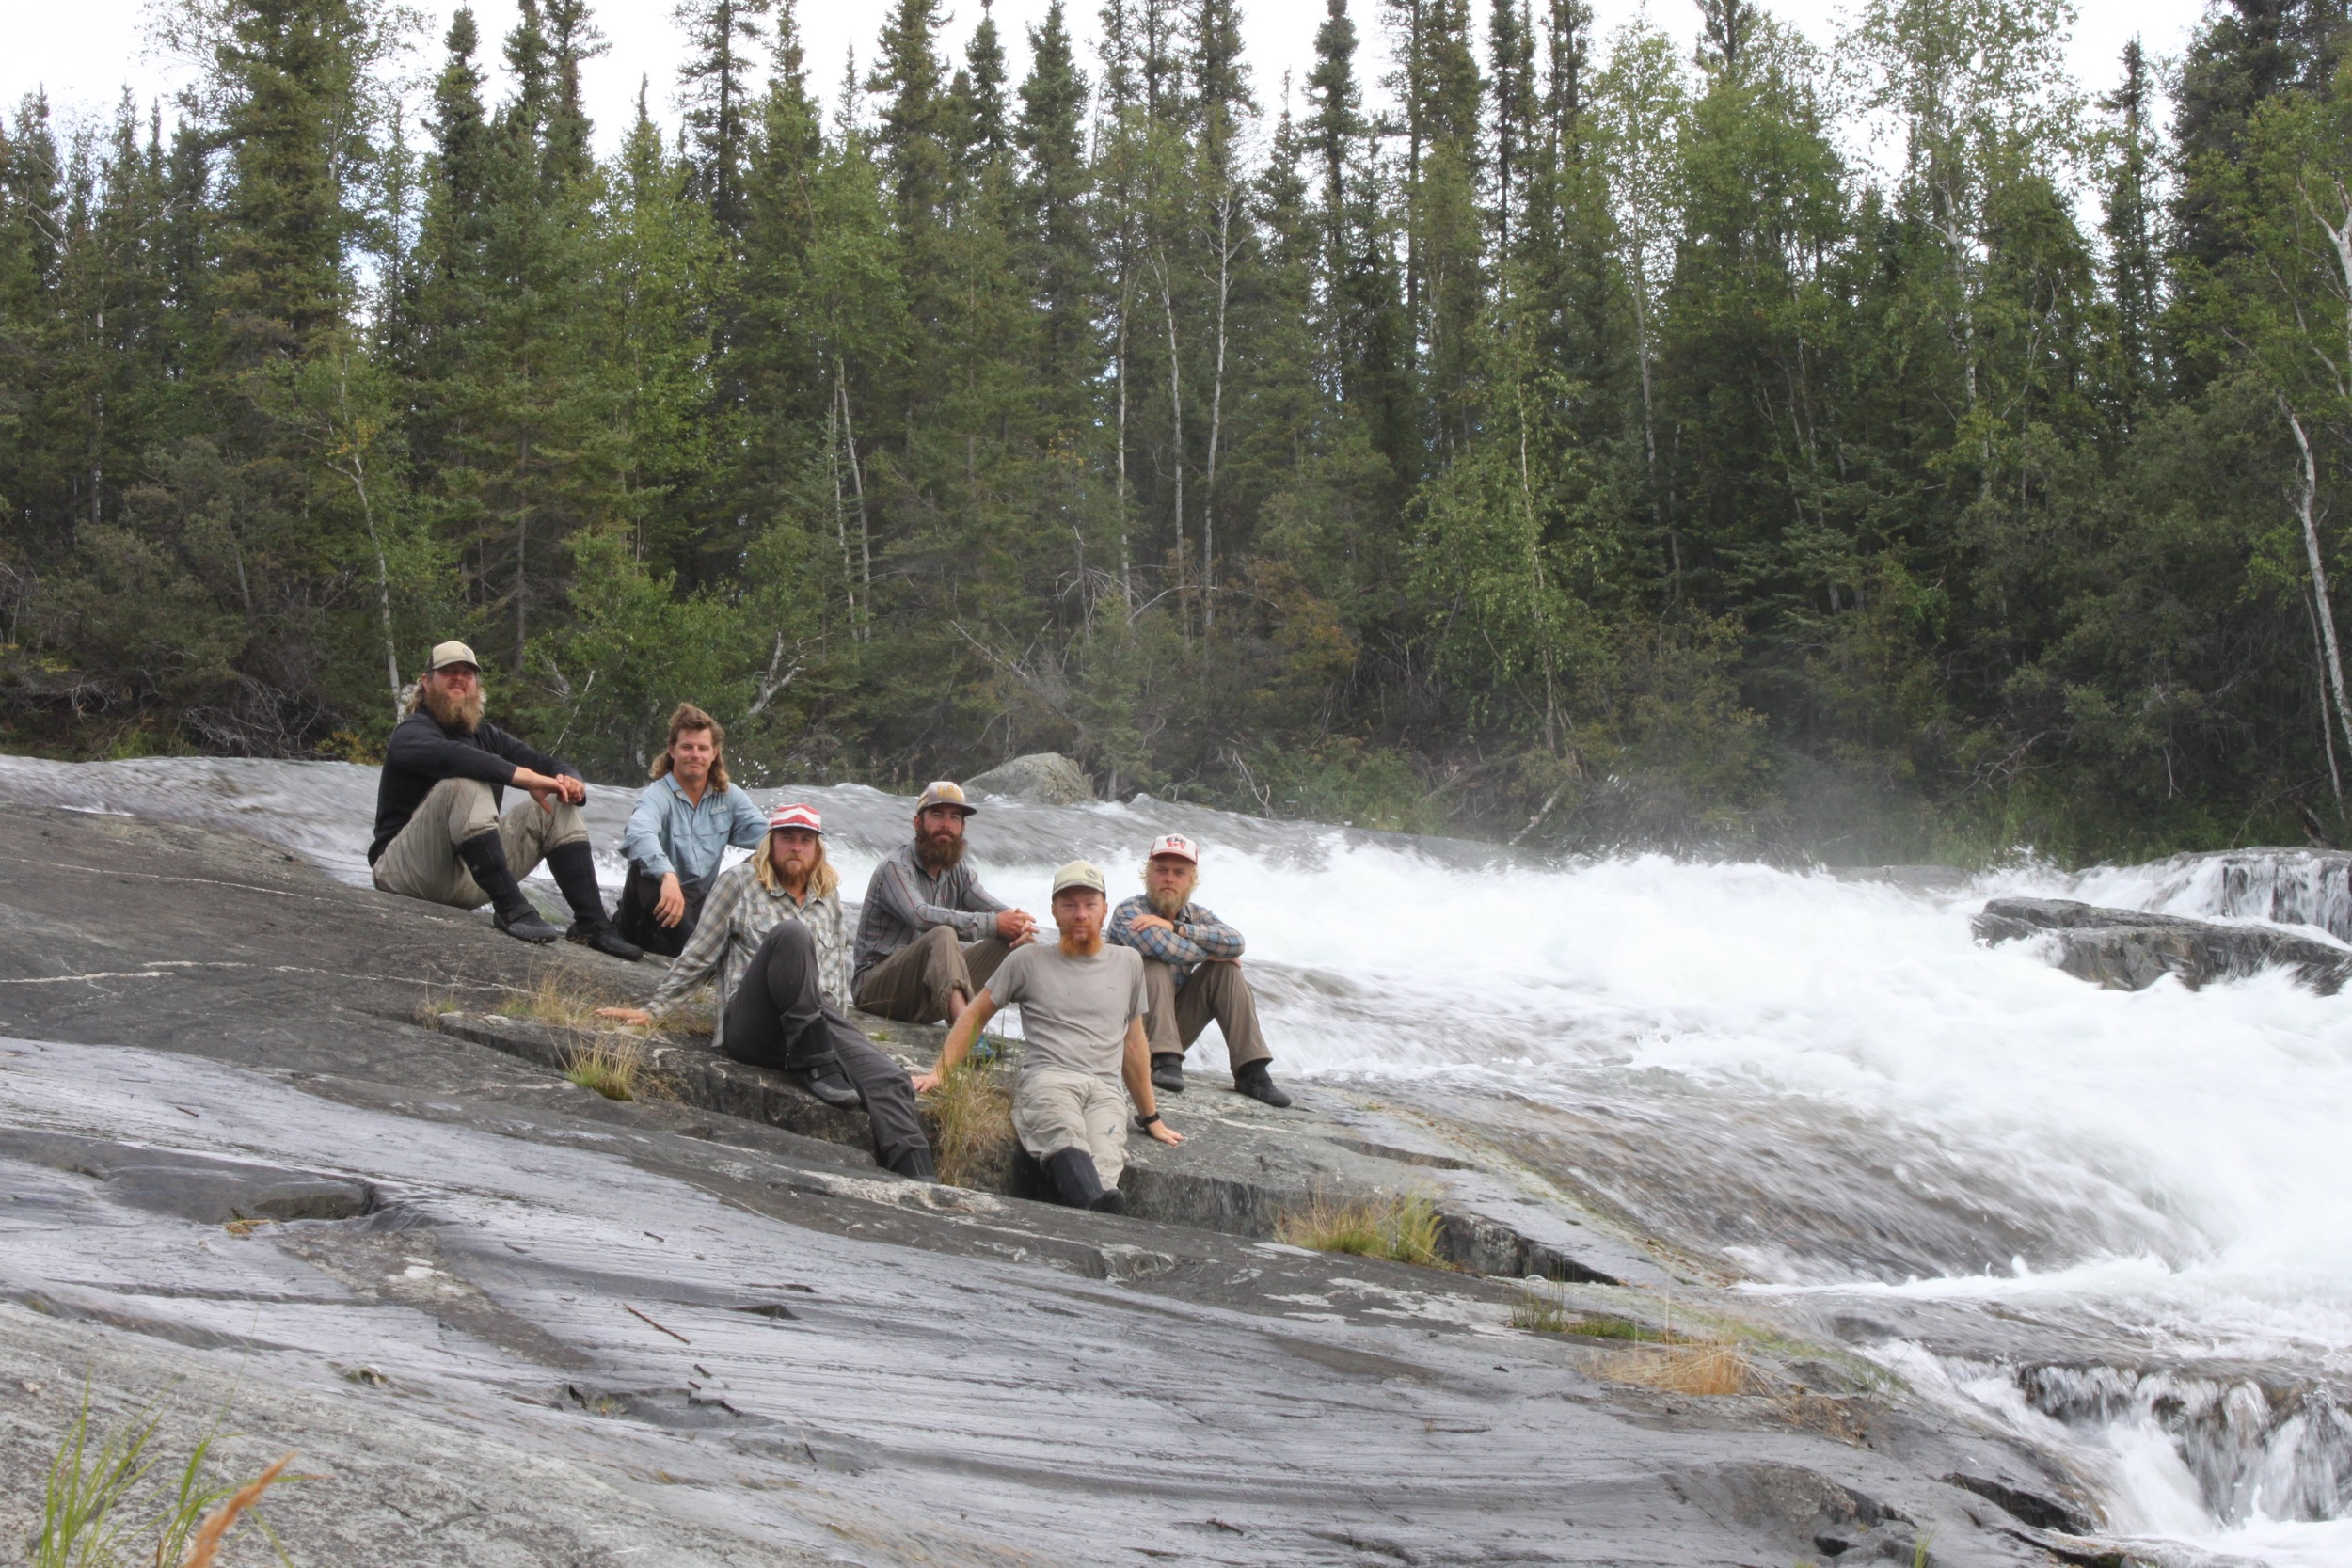 The crew on the Marian River, Northwest TERRITORIES, Canada